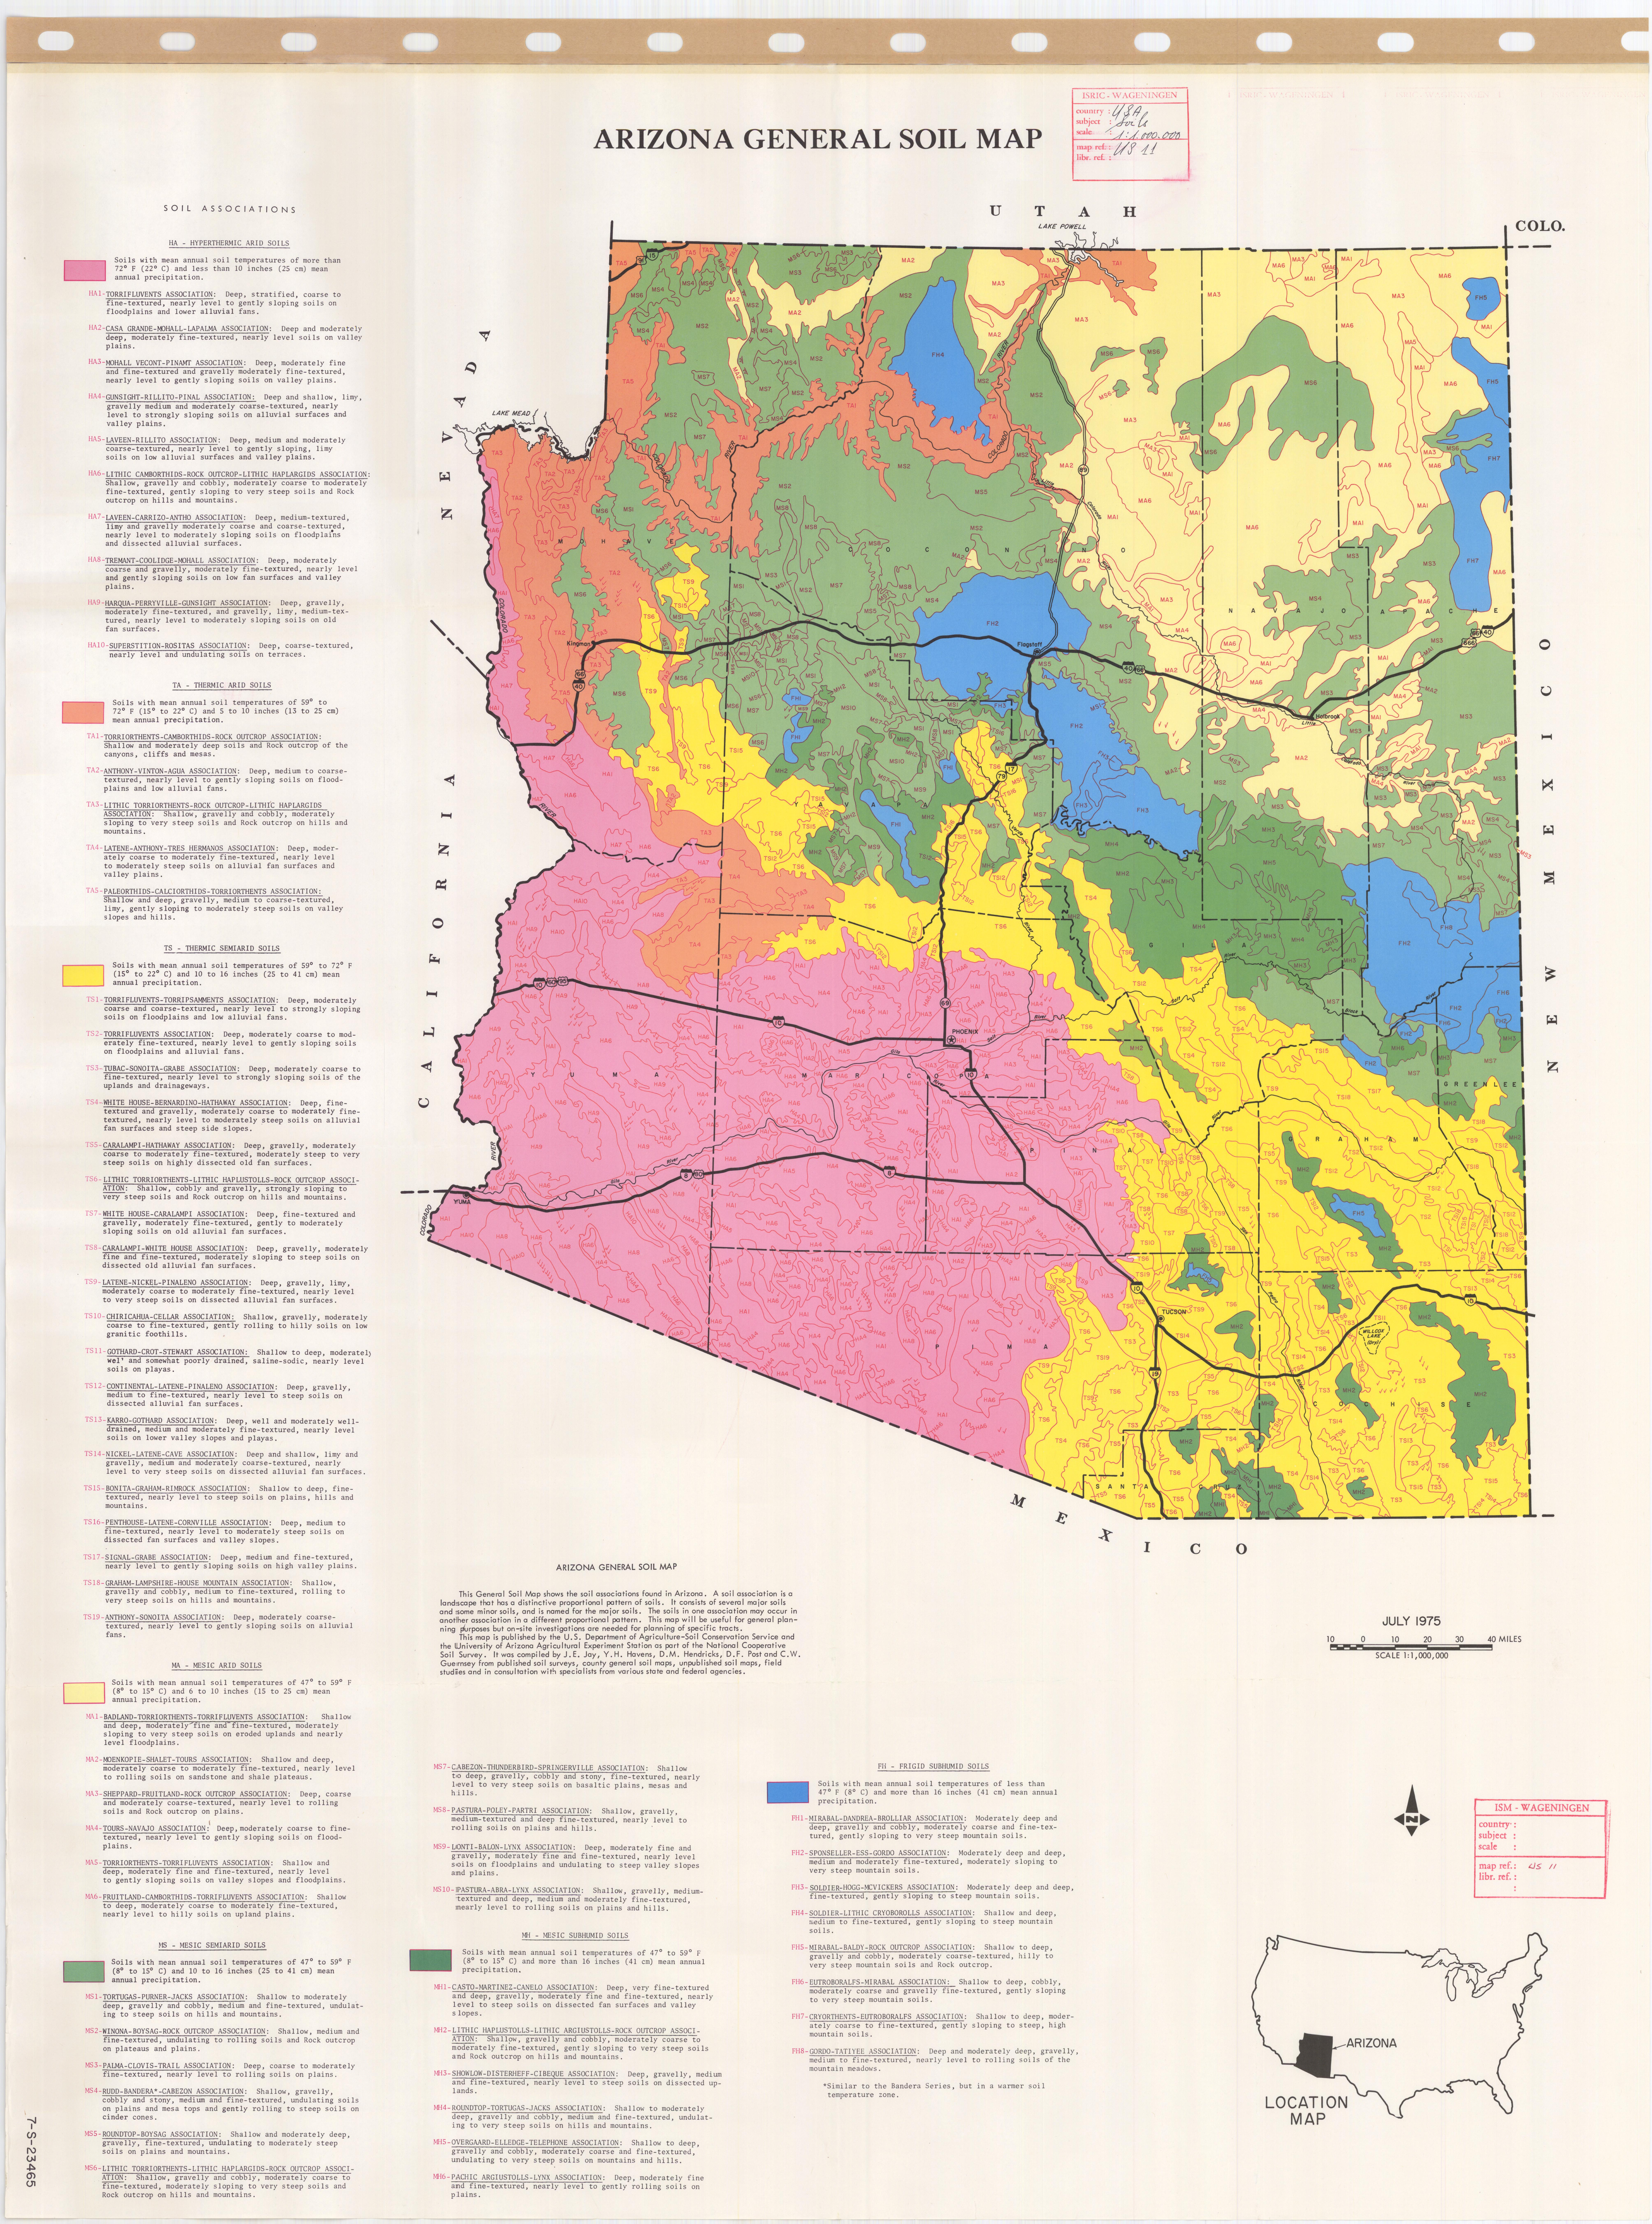 Arizona General Soil Map - ESDAC - European Commission